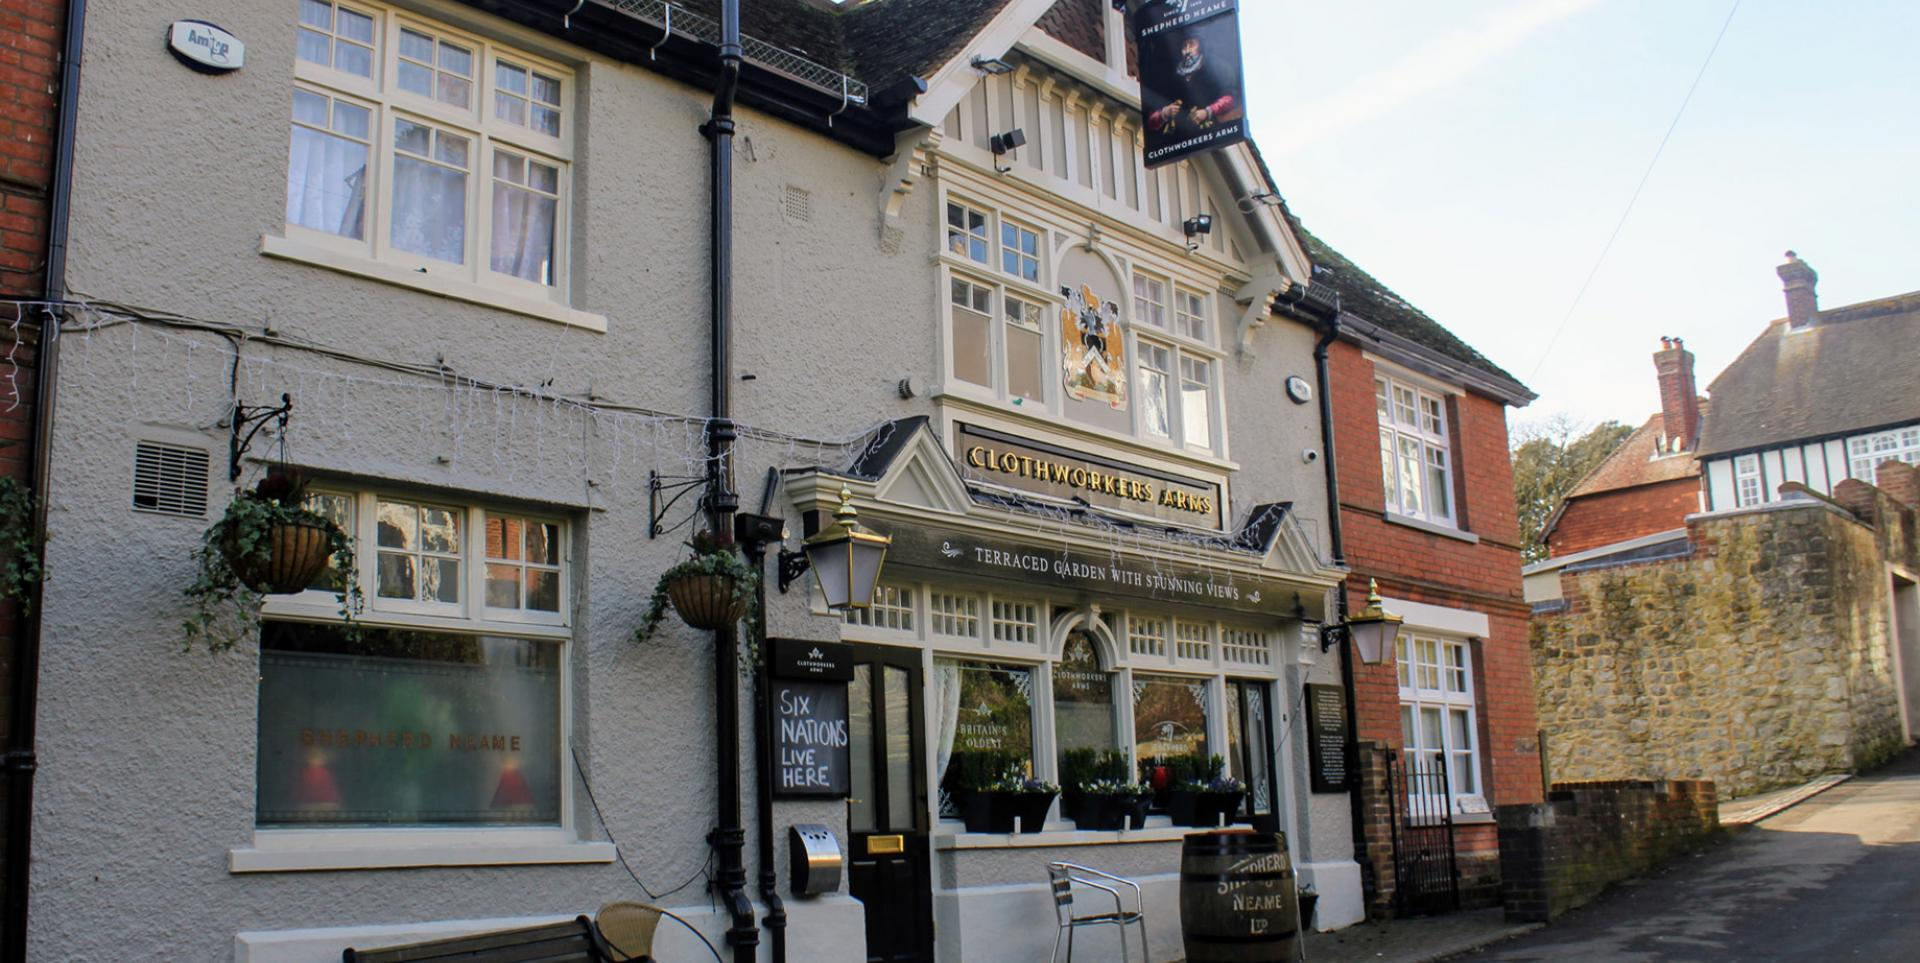 Clothworkers Arms, Sutton Valence, Maidstone